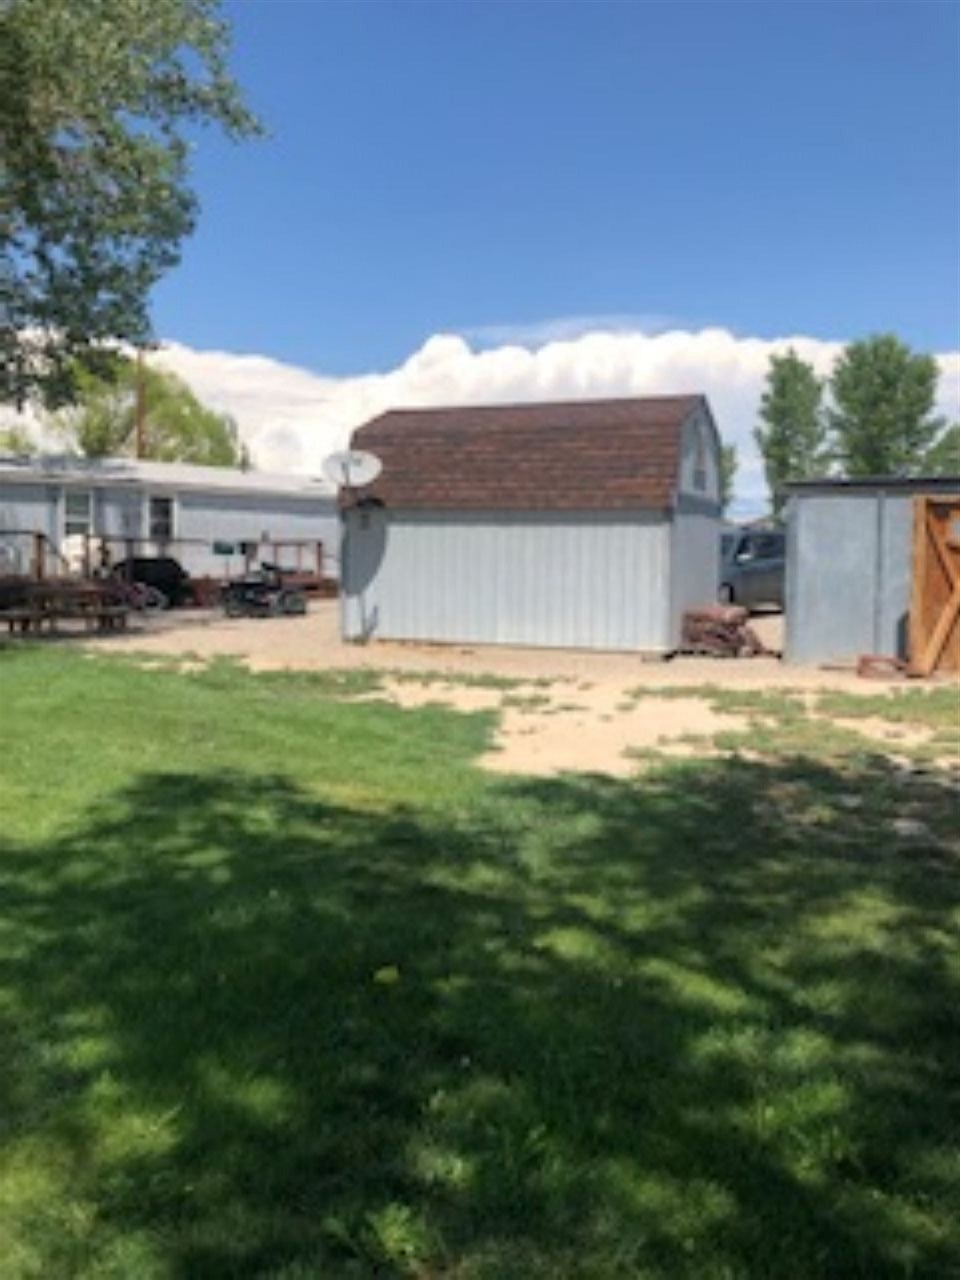 MLS# 20194463 - 5 - 1290 Highway 6&50 , Loma, CO 81524